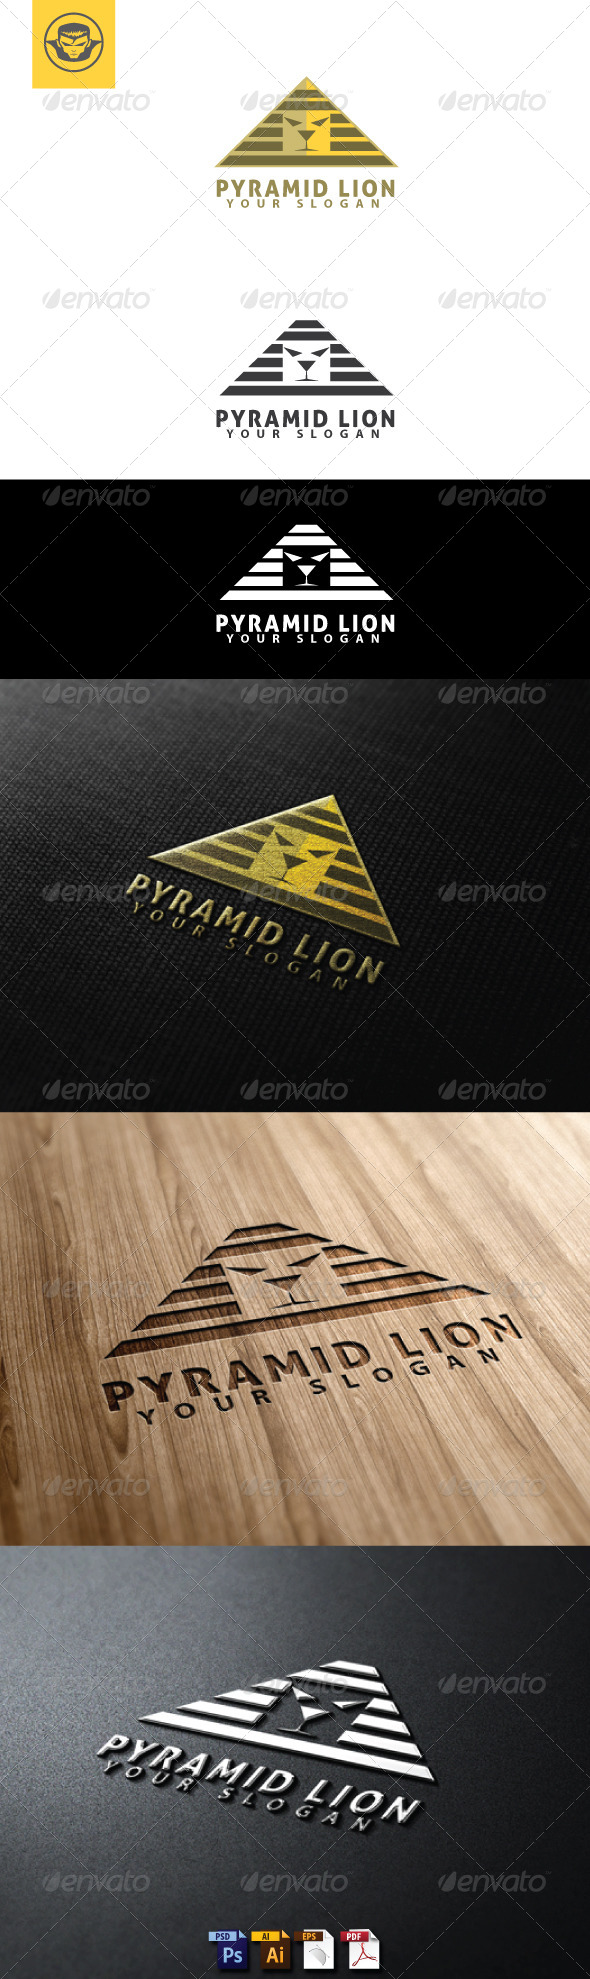 GraphicRiver Pyramid Lion Logo Template 4753575